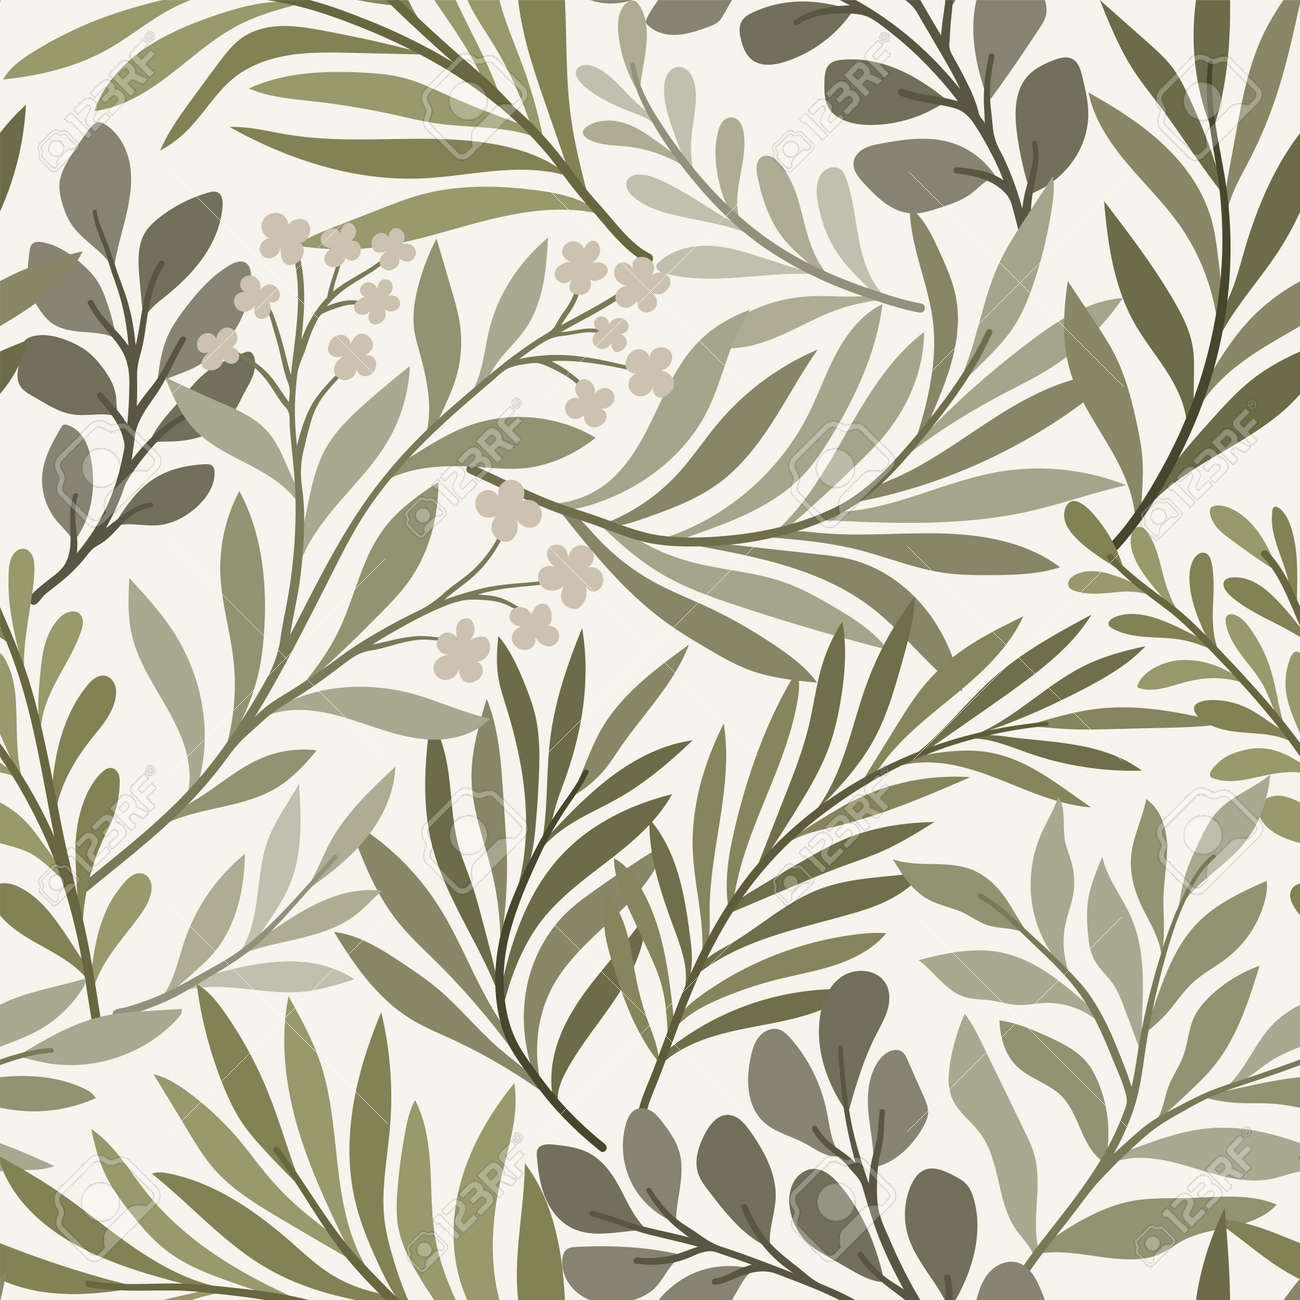 Vector hand drawn leaves seamless pattern. Abstract trendy floral background. Repeatable texture. - 168264767